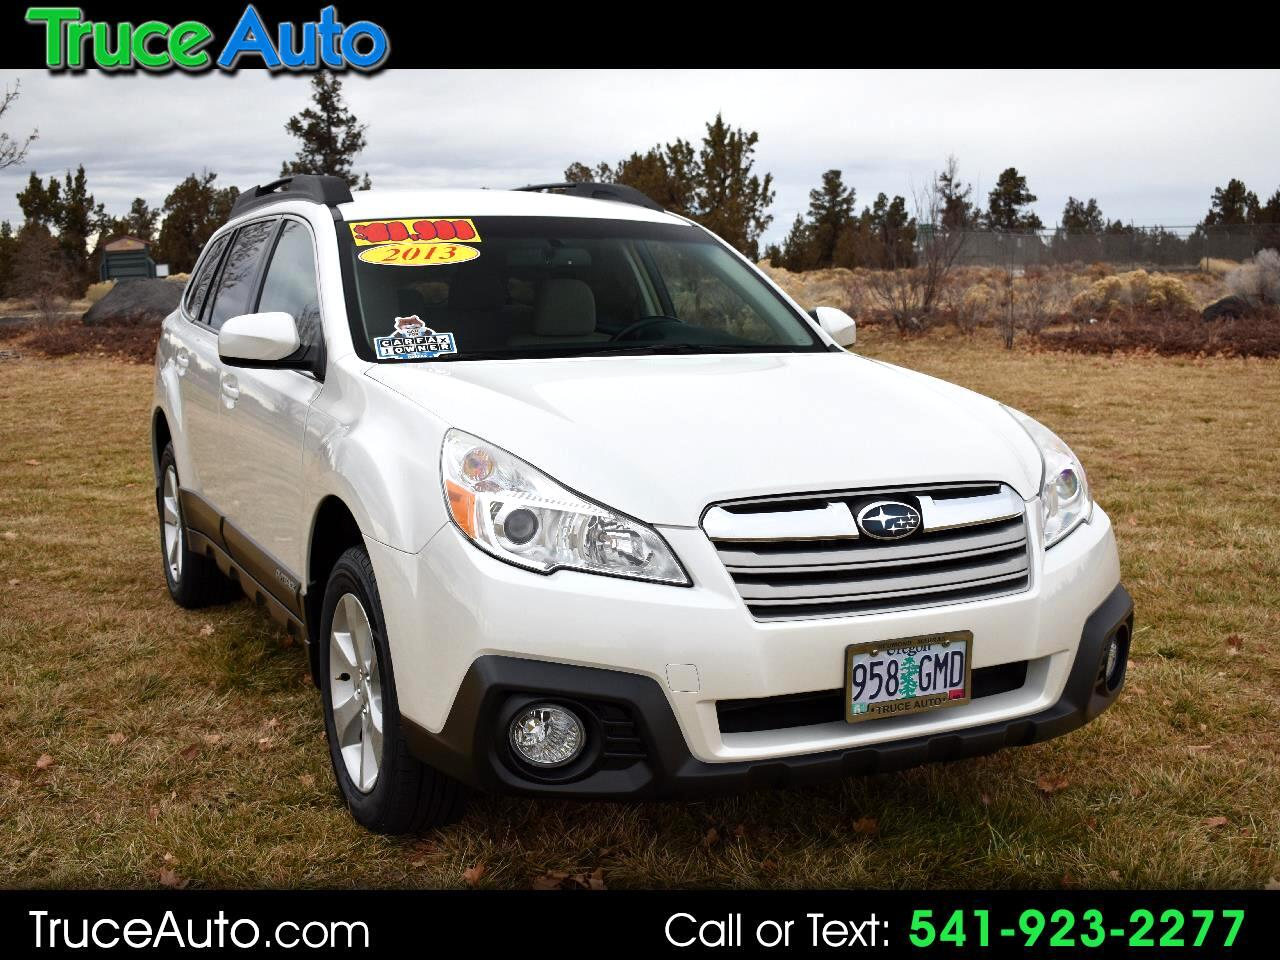 2013 Subaru Outback 2.5i Auto Premium Wgn AWD LOW MILES ONE OWNER